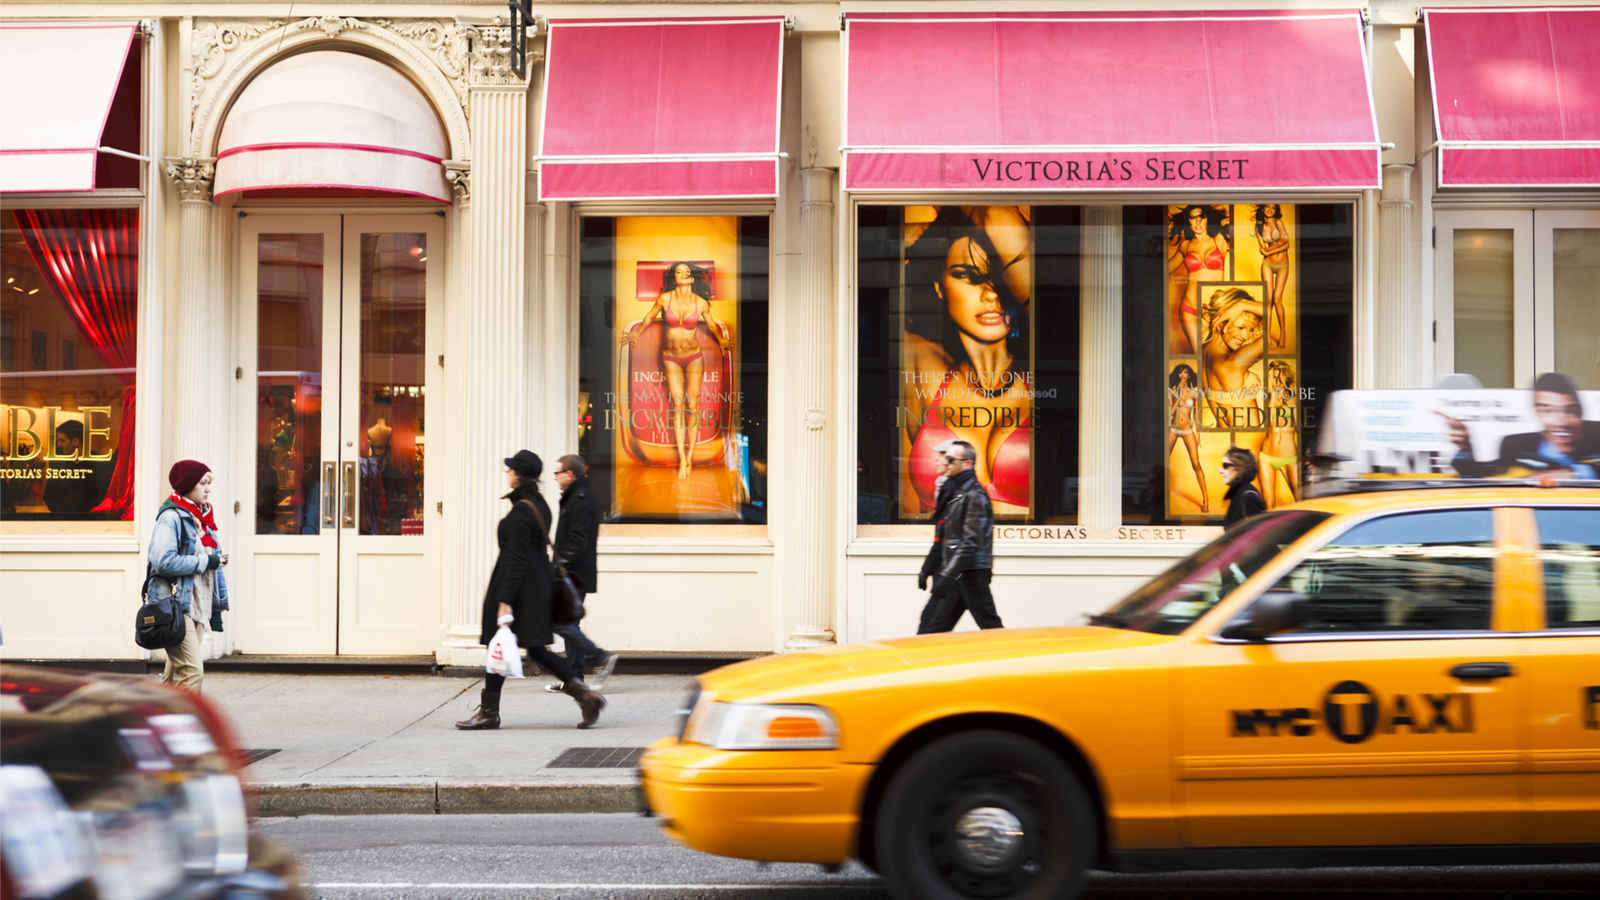 Victoria's Secret store in Soho, New York